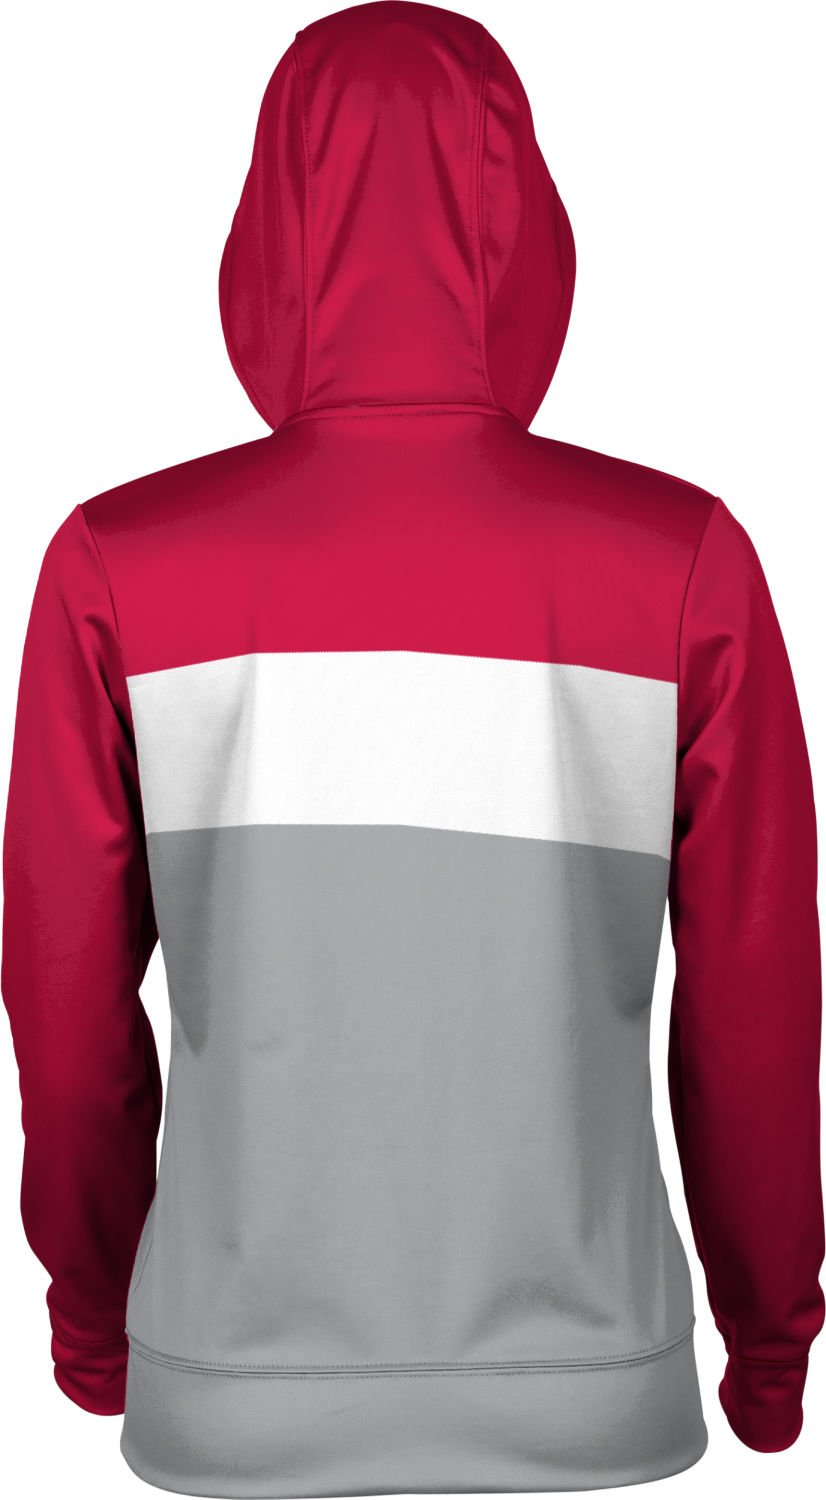 ProSphere Austin Peay State University Girls' Pullover Hoodie - Prime FD371 by ProSphere (Image #3)